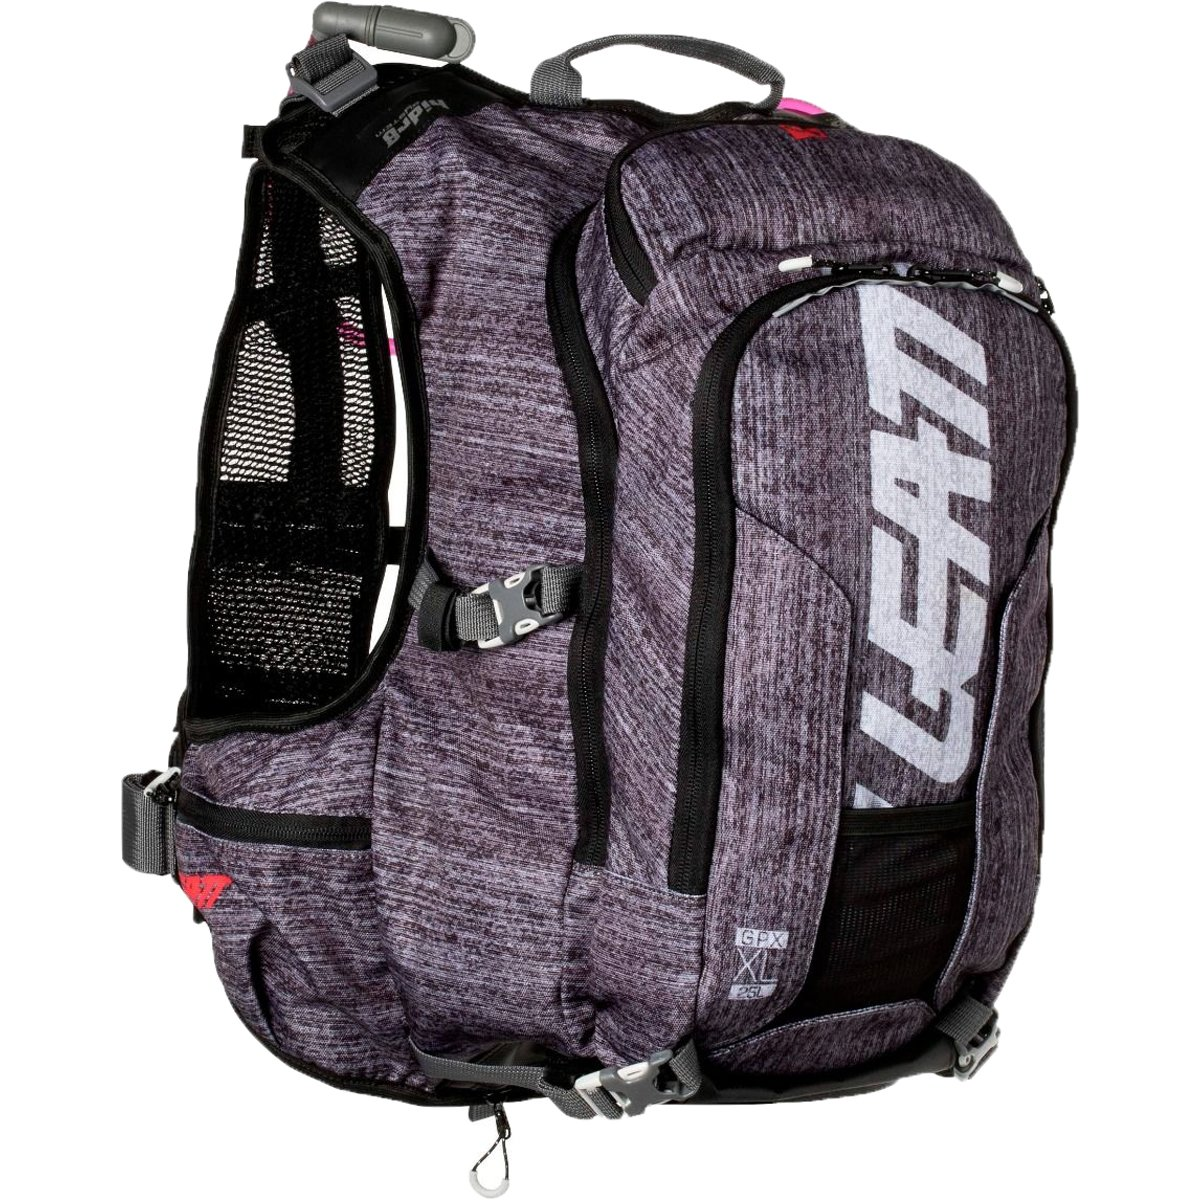 Leatt Hydration GPX XL 2.0 Backpack - Dark Brushed/X-Small/XX-Large